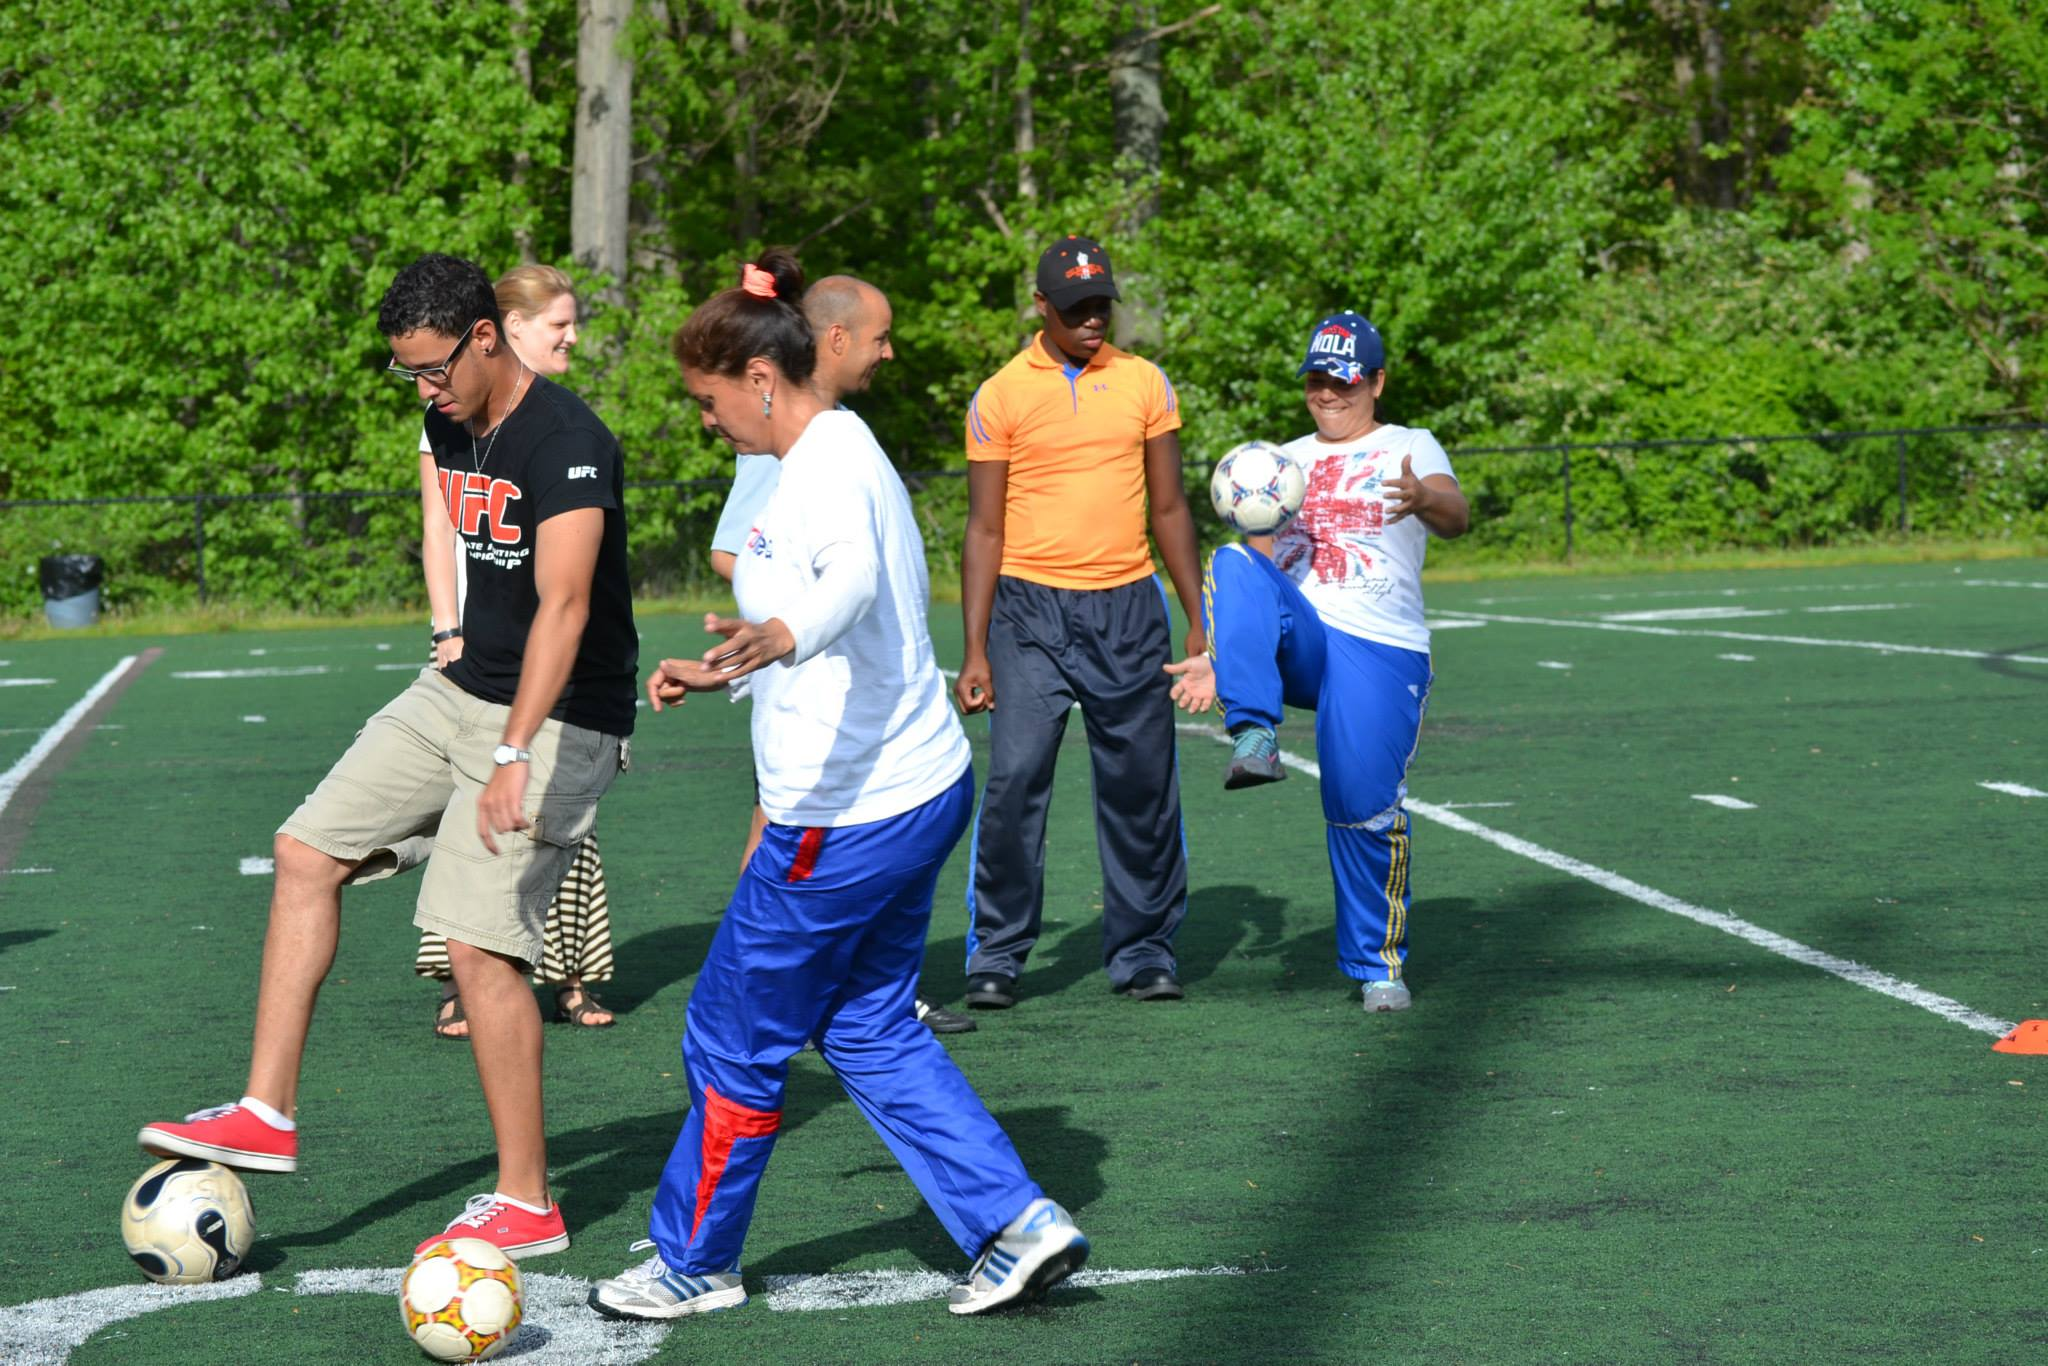 Coaches instructing the sports visitors during drills